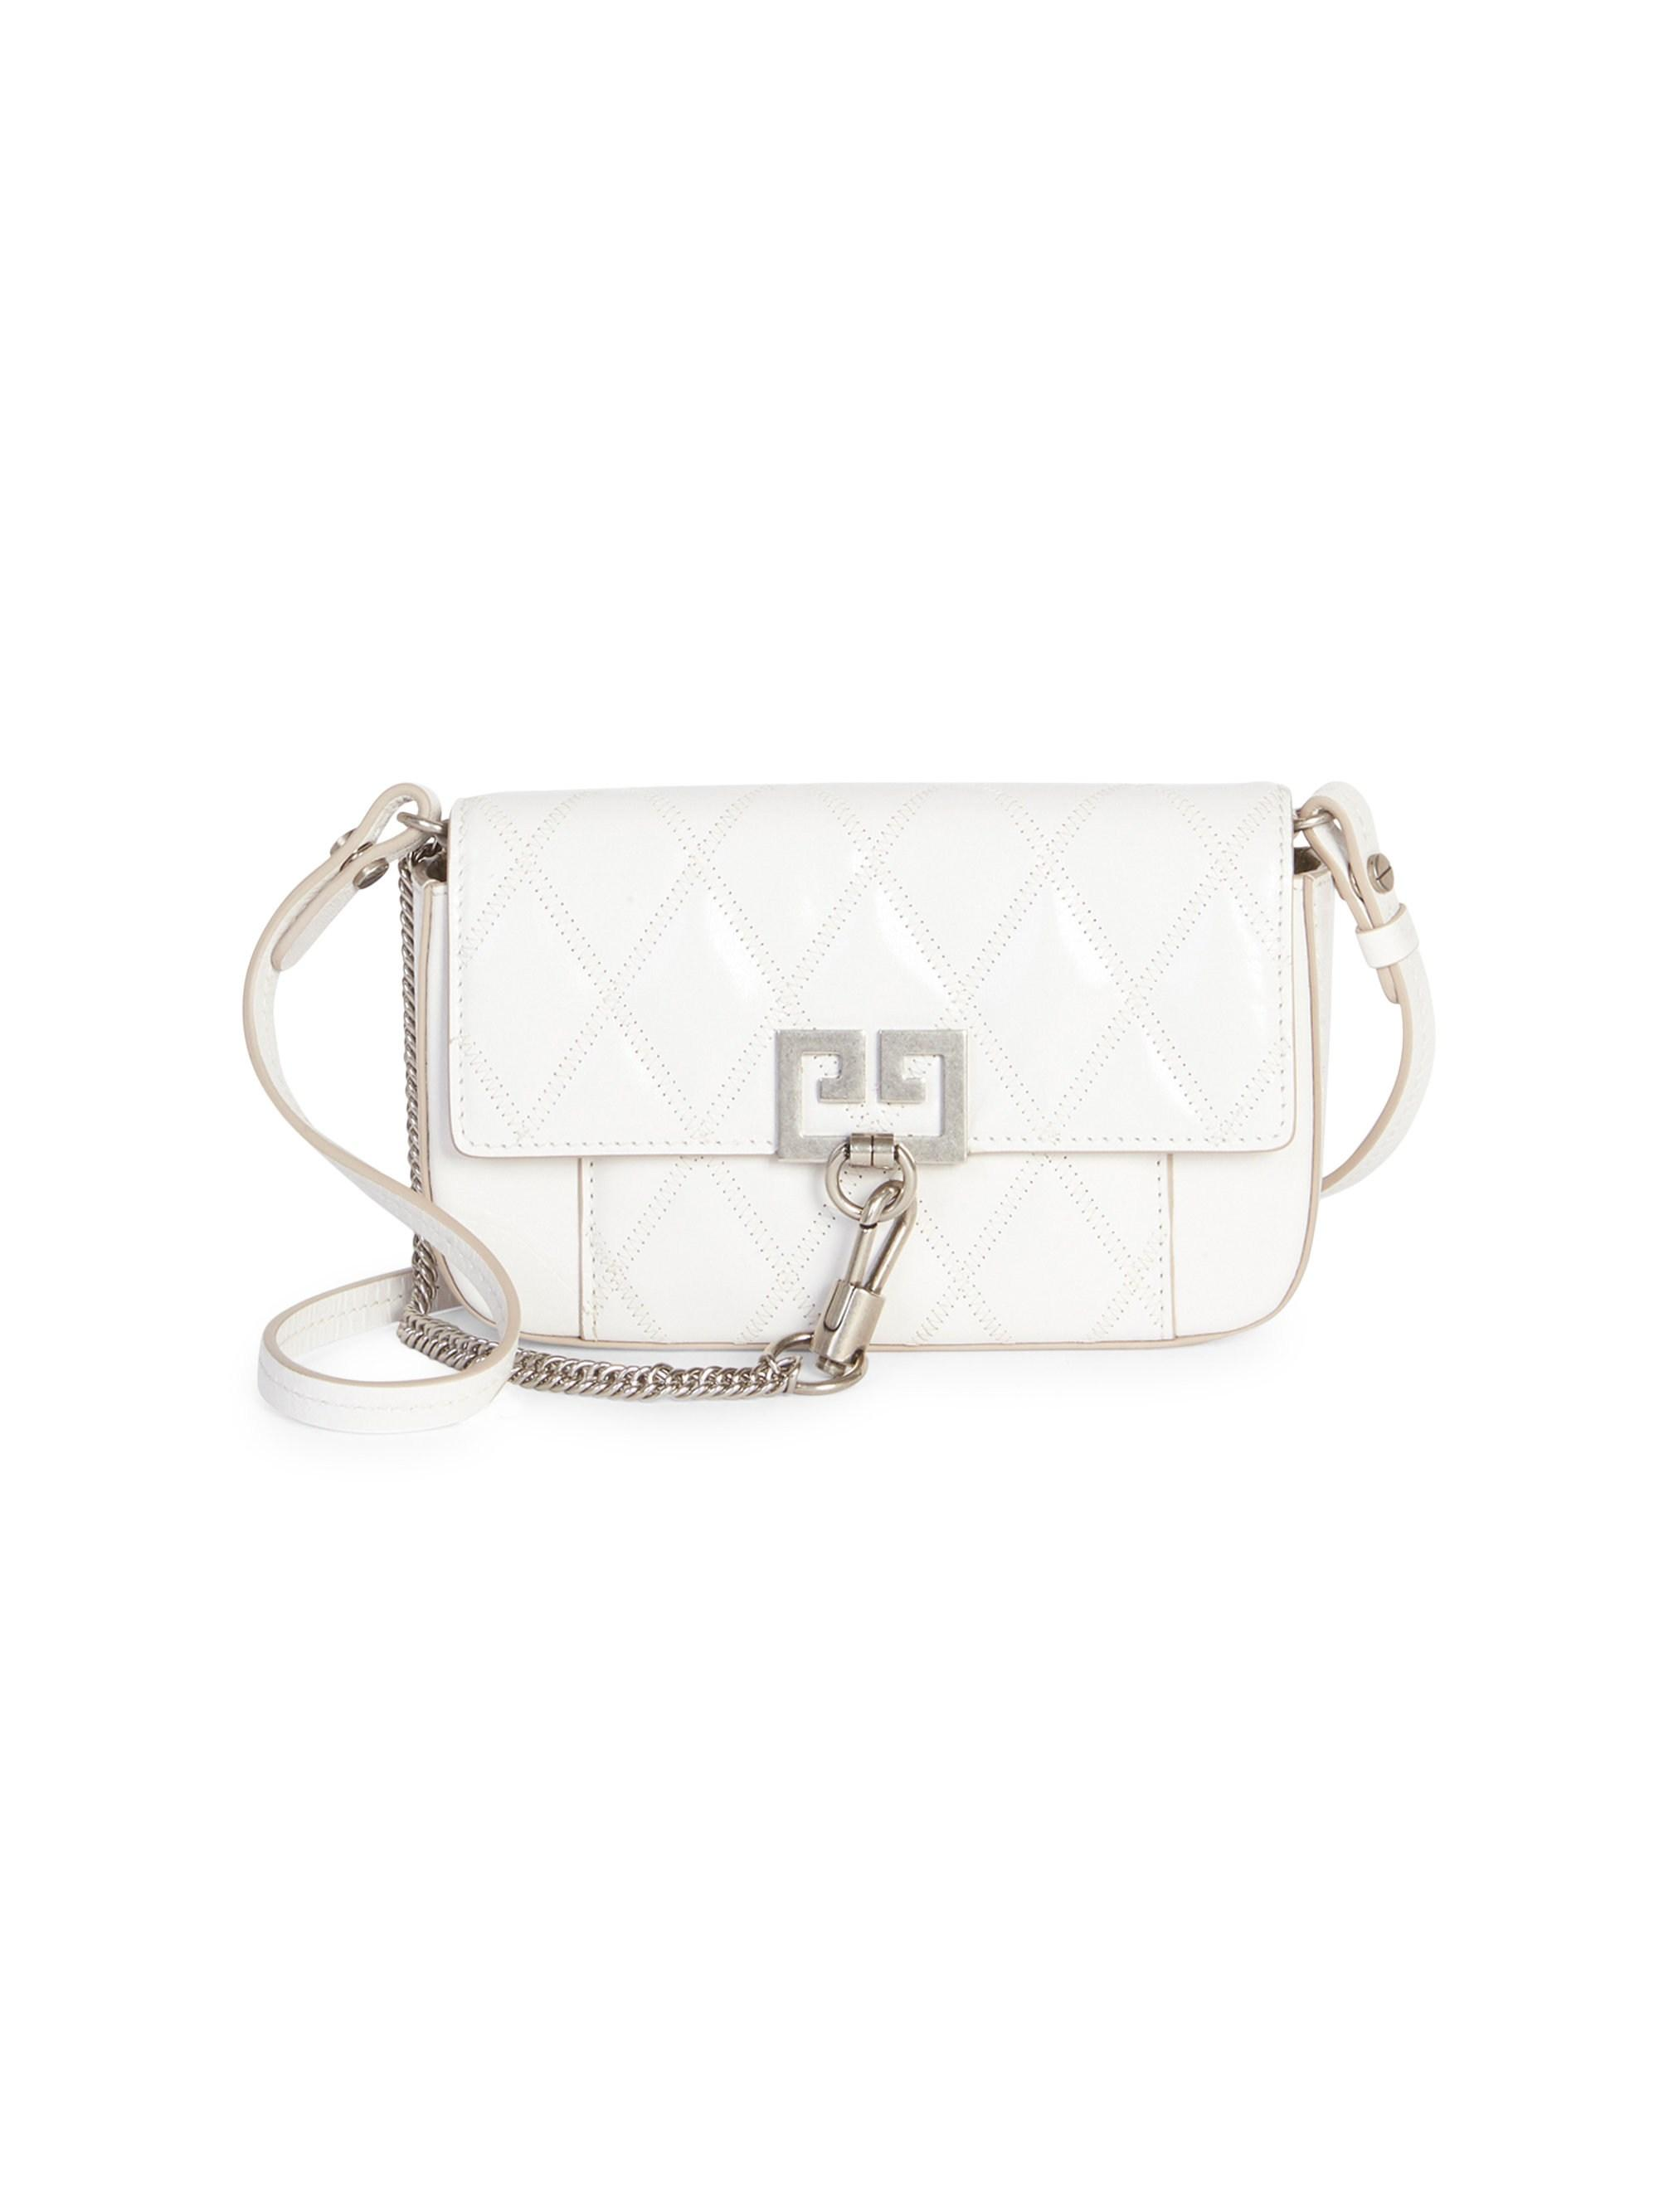 f455e6e5c920 Lyst - Givenchy Pocket Mini Leather Crossbody Bag in White